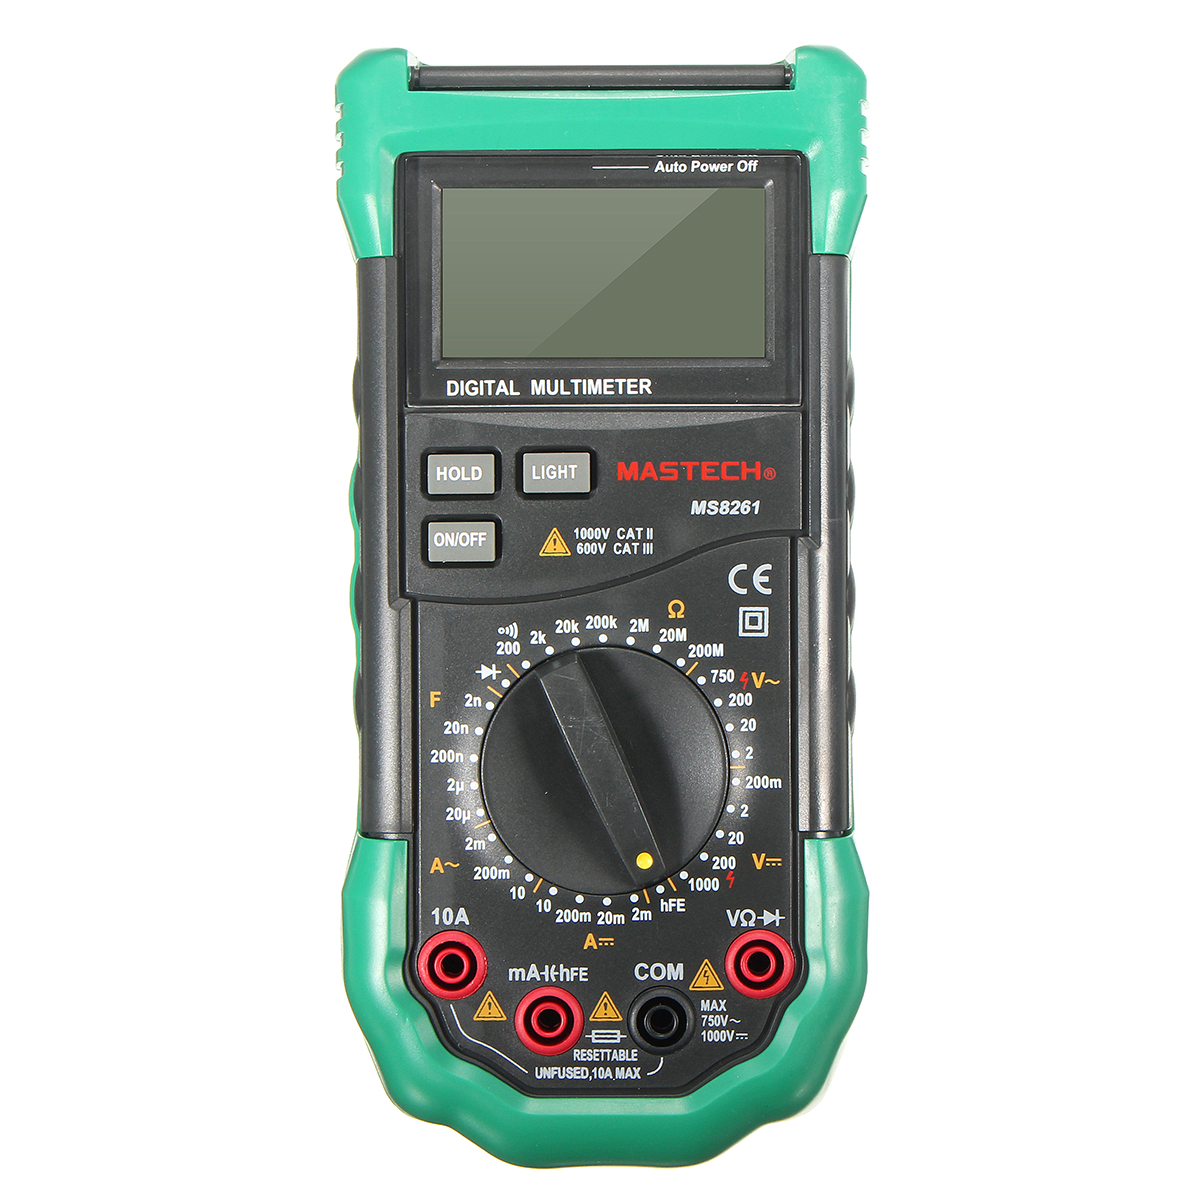 MASTECH MS8261 LCD Backlight Display Digital Multimeters AC/DC Volt Amp hFE Test